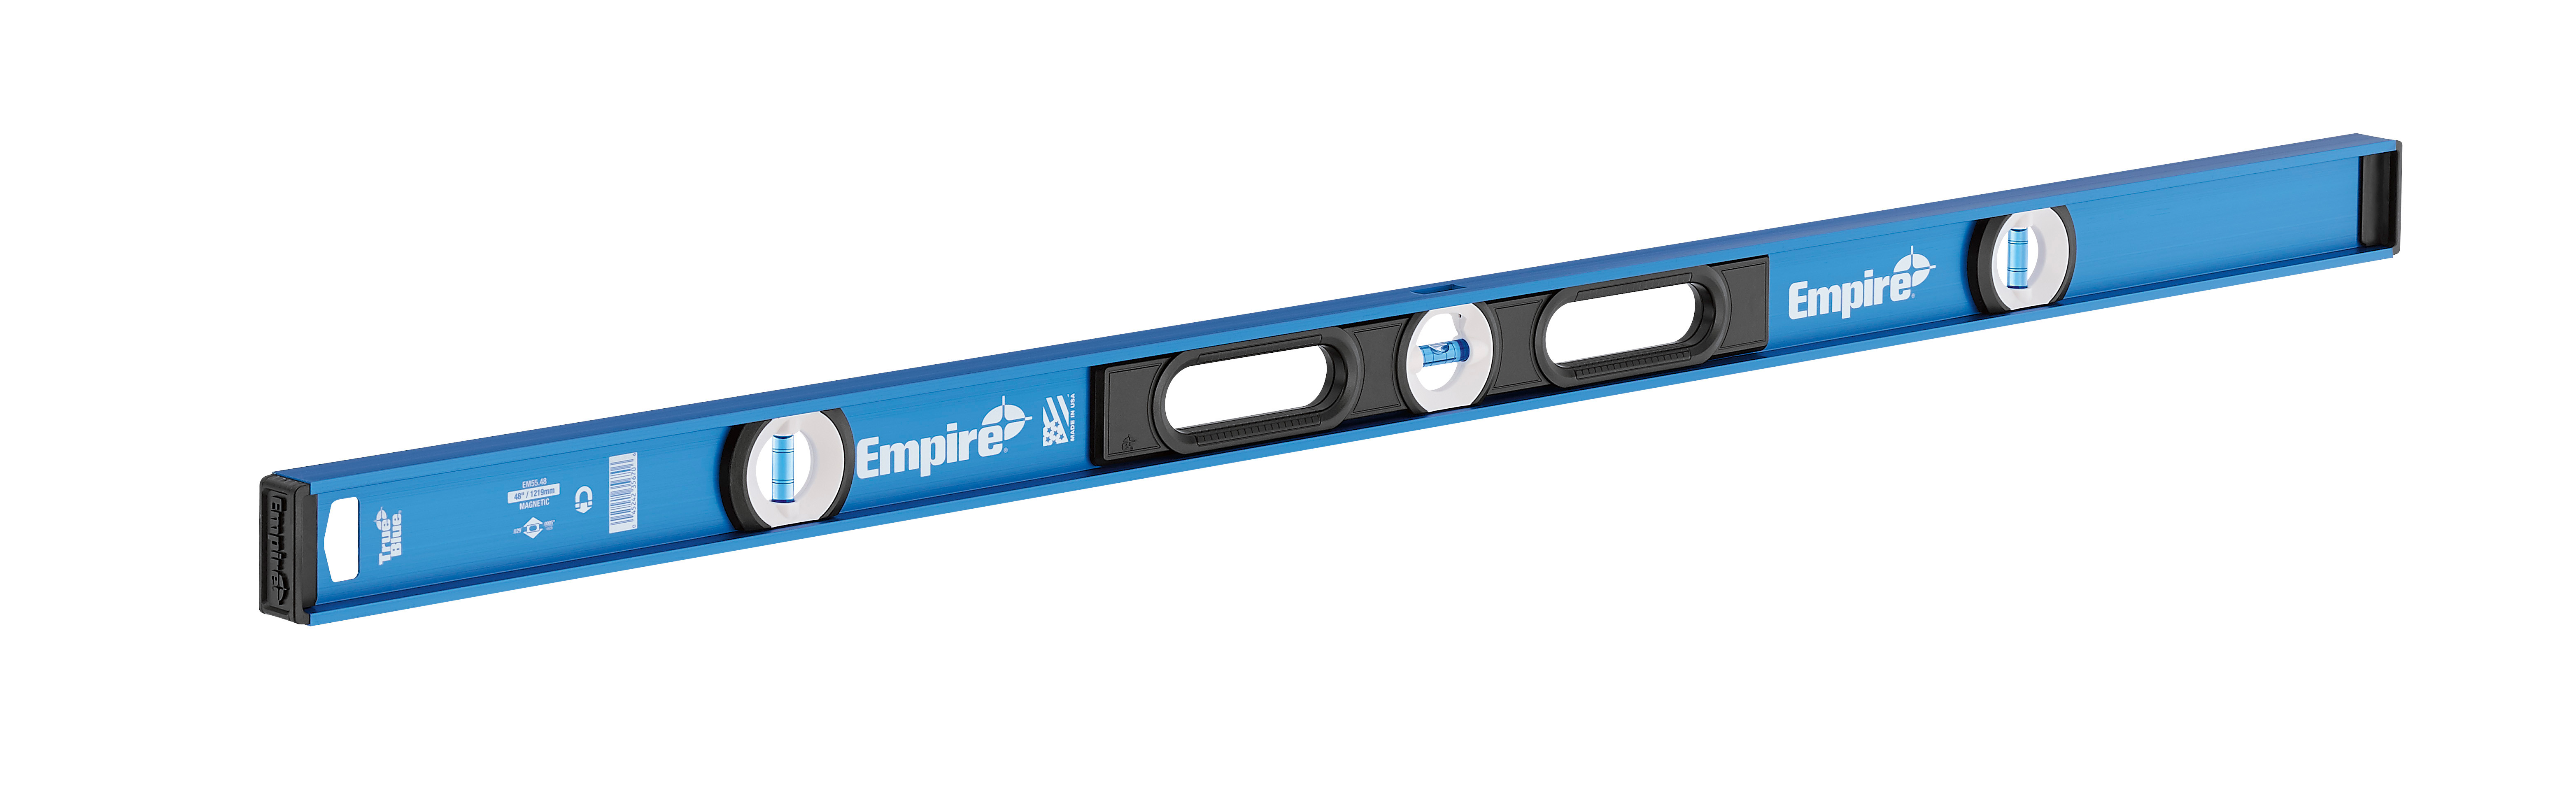 Milwaukee® Empire® EM55.48 Heavy Duty Magnetic I-Beam Level, 48 in L, 3 Vials, Aluminum, (1) Level, (2) Plumb Vial Position, 0.0005 in Accuracy